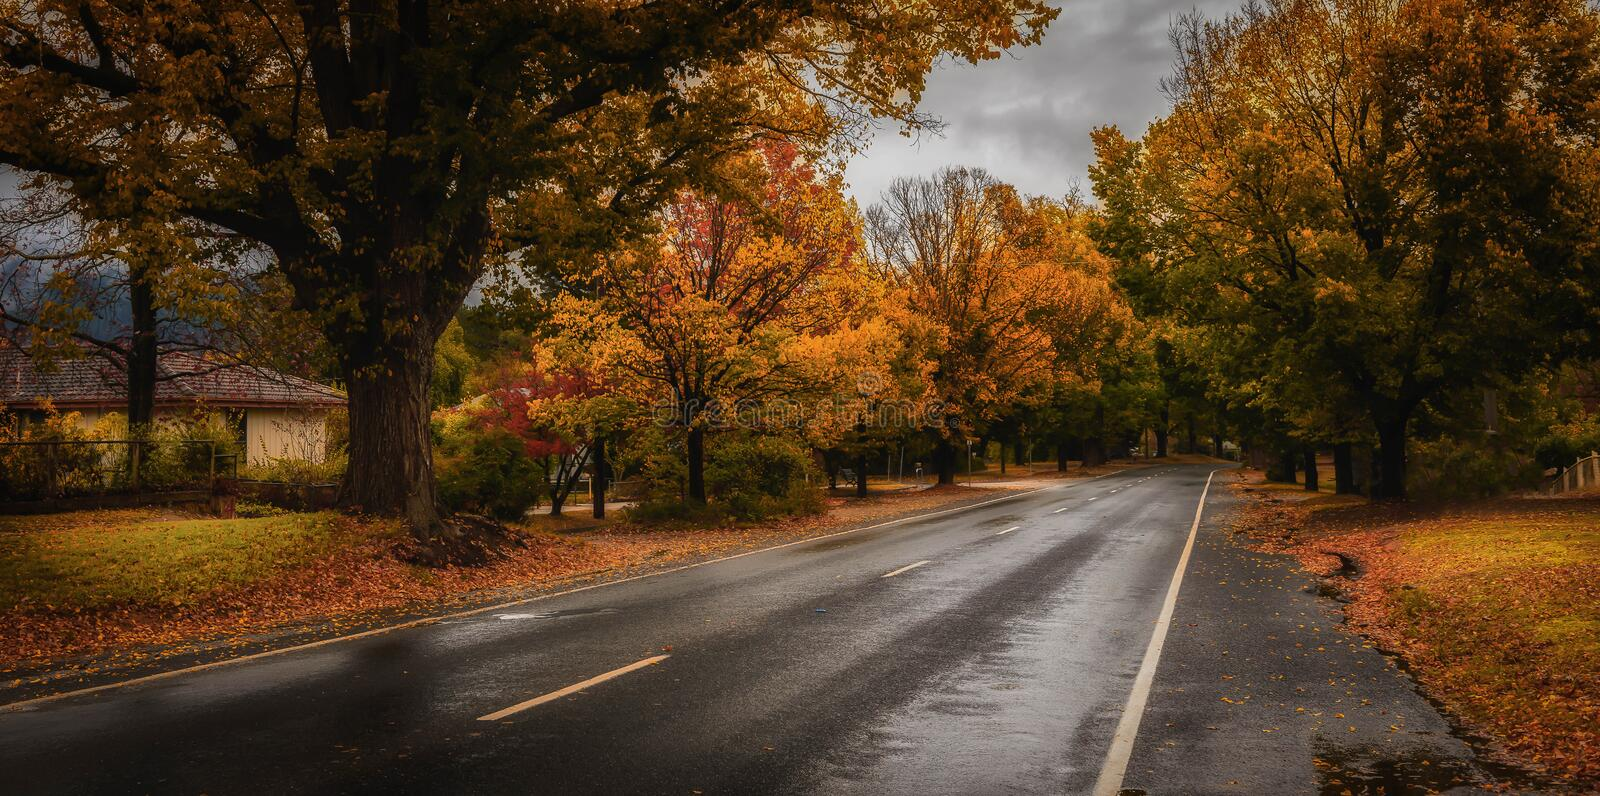 Suburban street with Autumn leaves royalty free stock photography